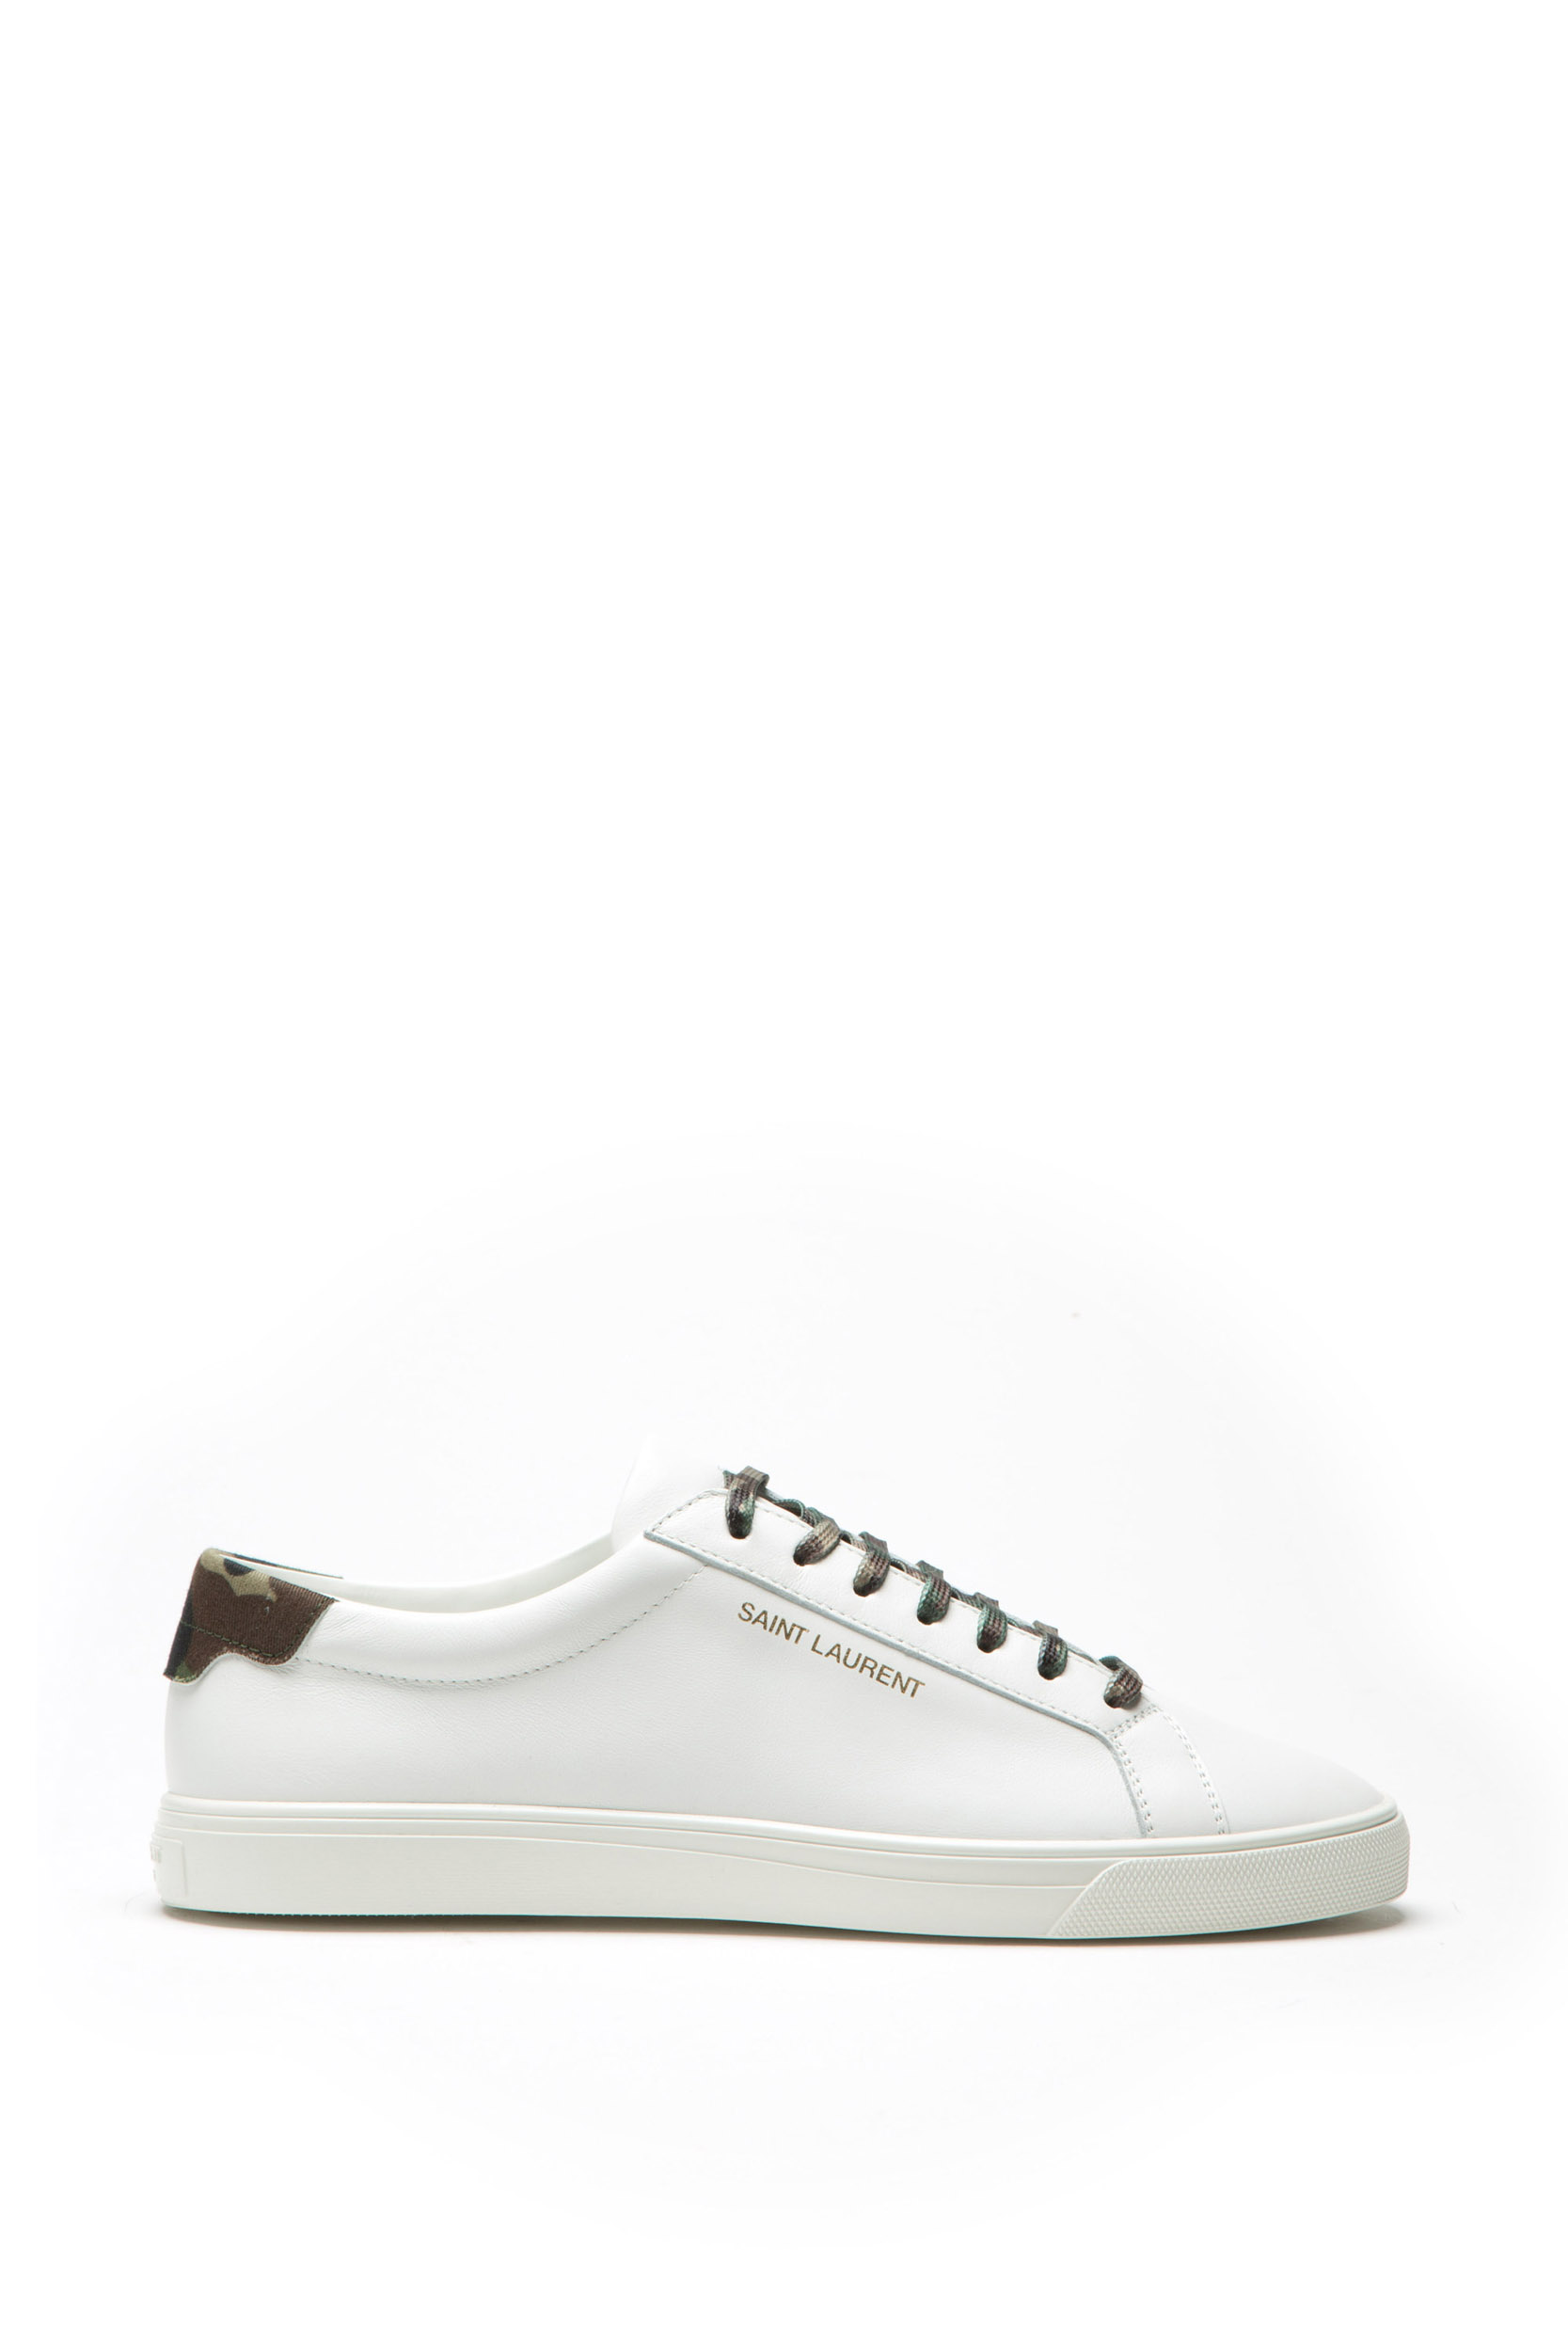 low priced 98e01 93291 Sneakers SAINT LAURENT 586586 0ZS609373